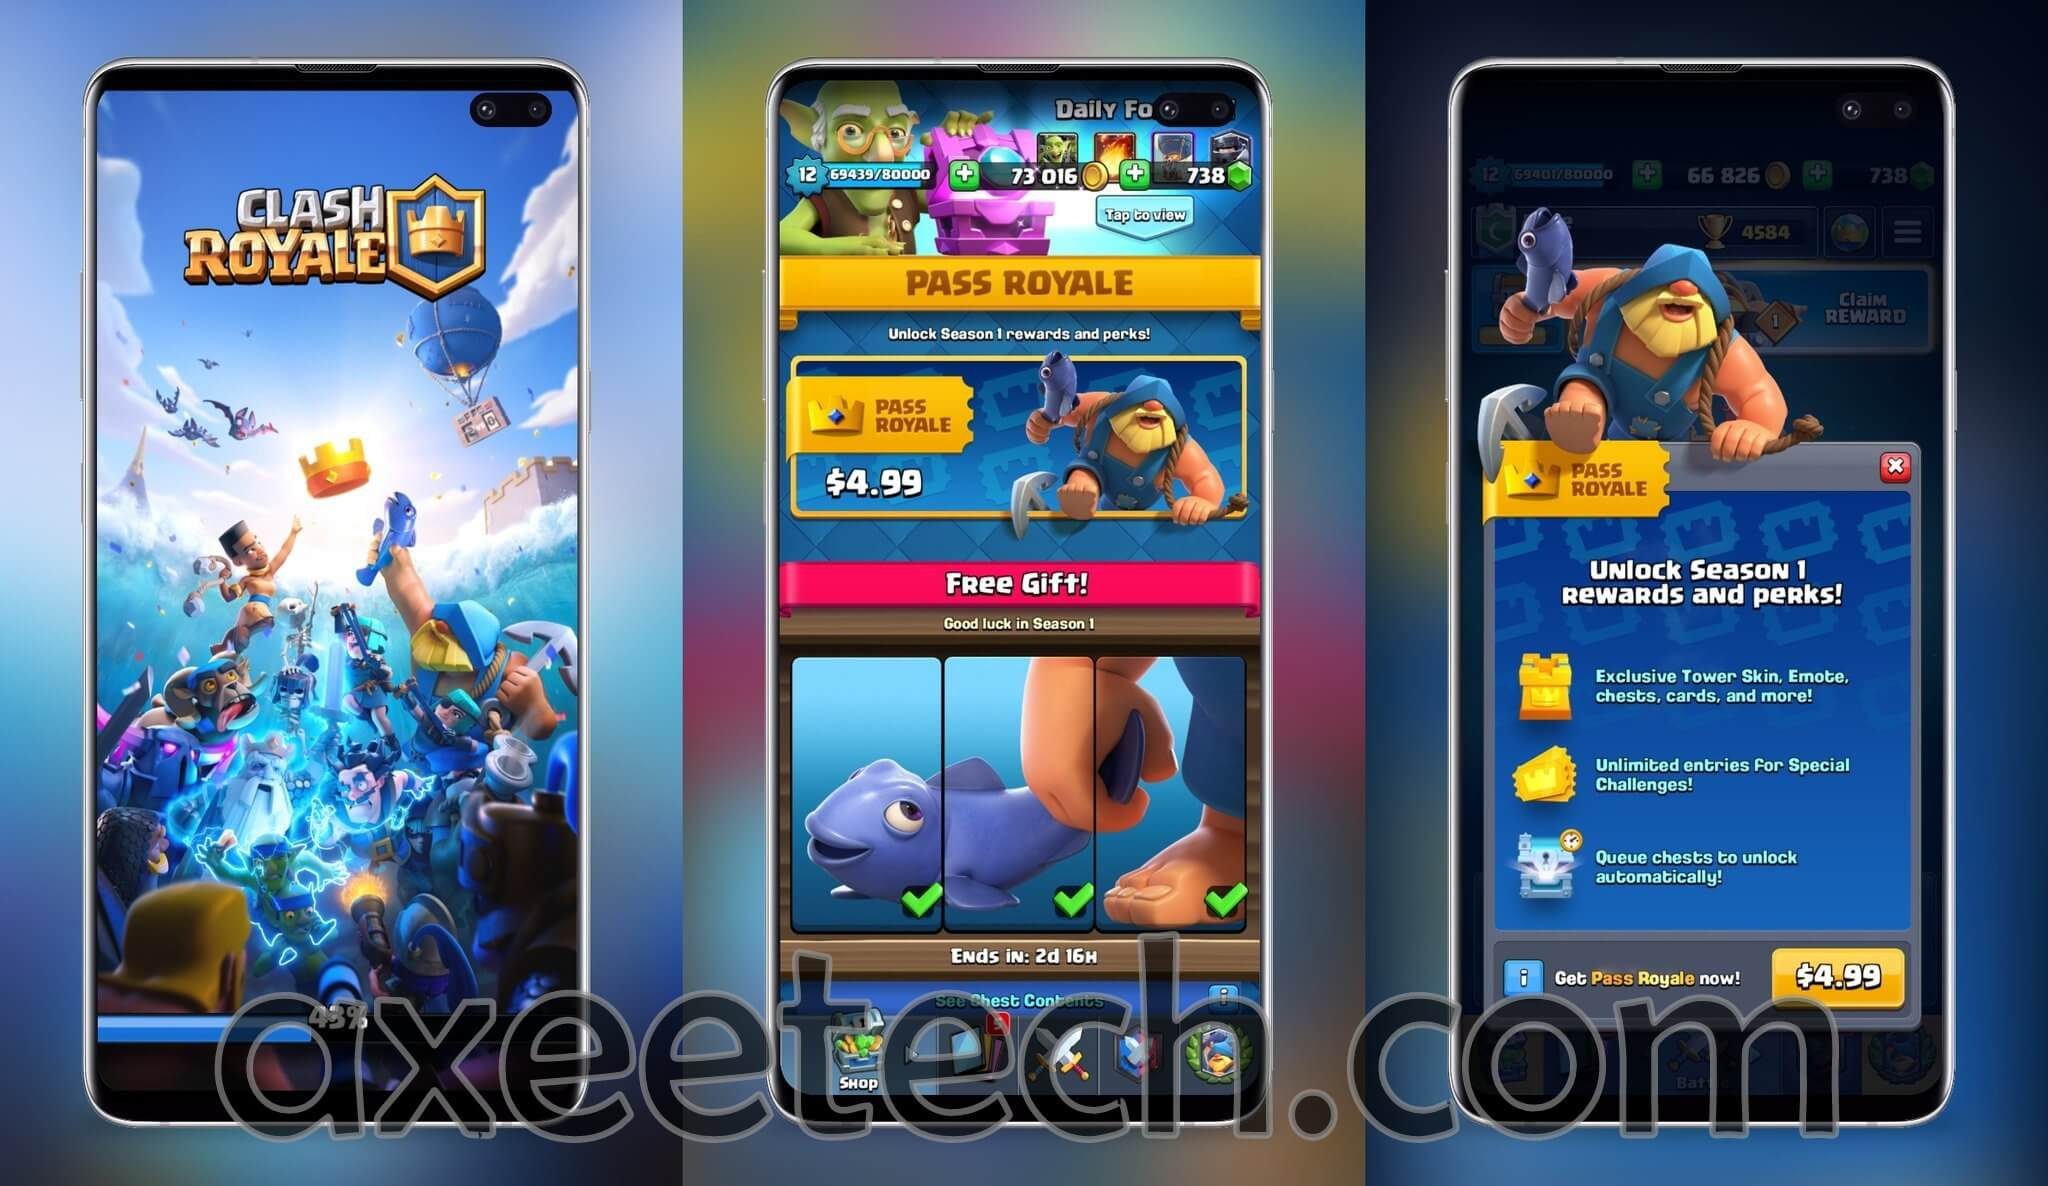 Clash Royale Mod Apk v2 8 0 +OBB/Data with Unlimited Coins